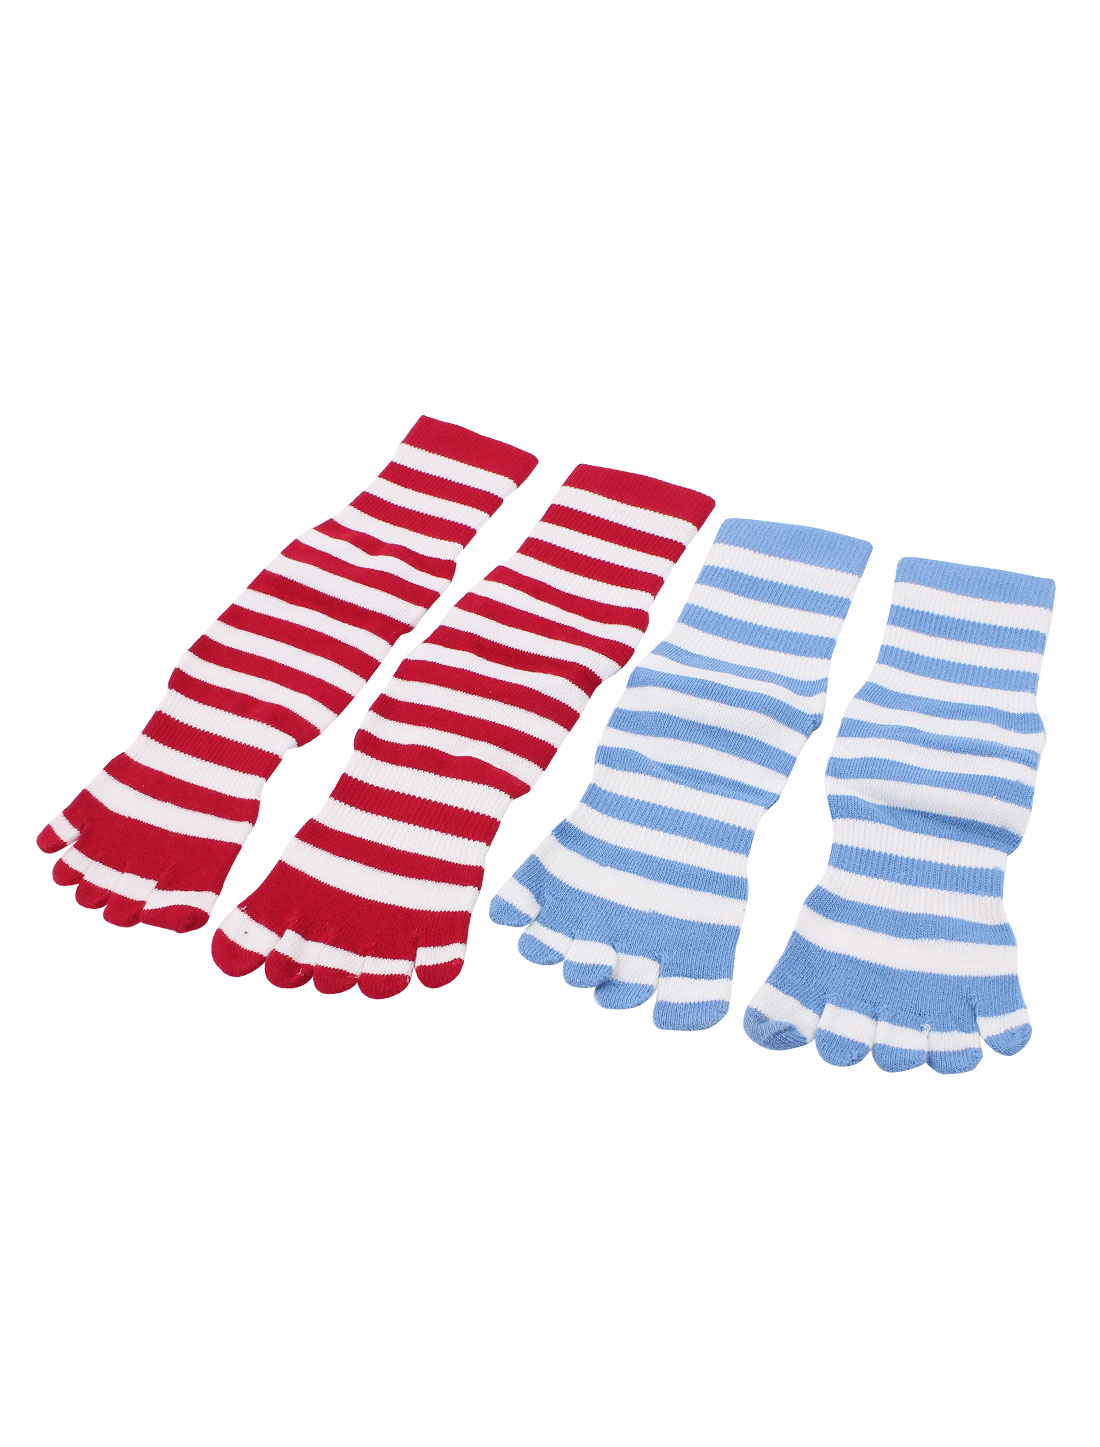 2Pairs Stripes Print Elastic Seperate Full Toe Anckle High Socks Sockens Red Blue for Lady